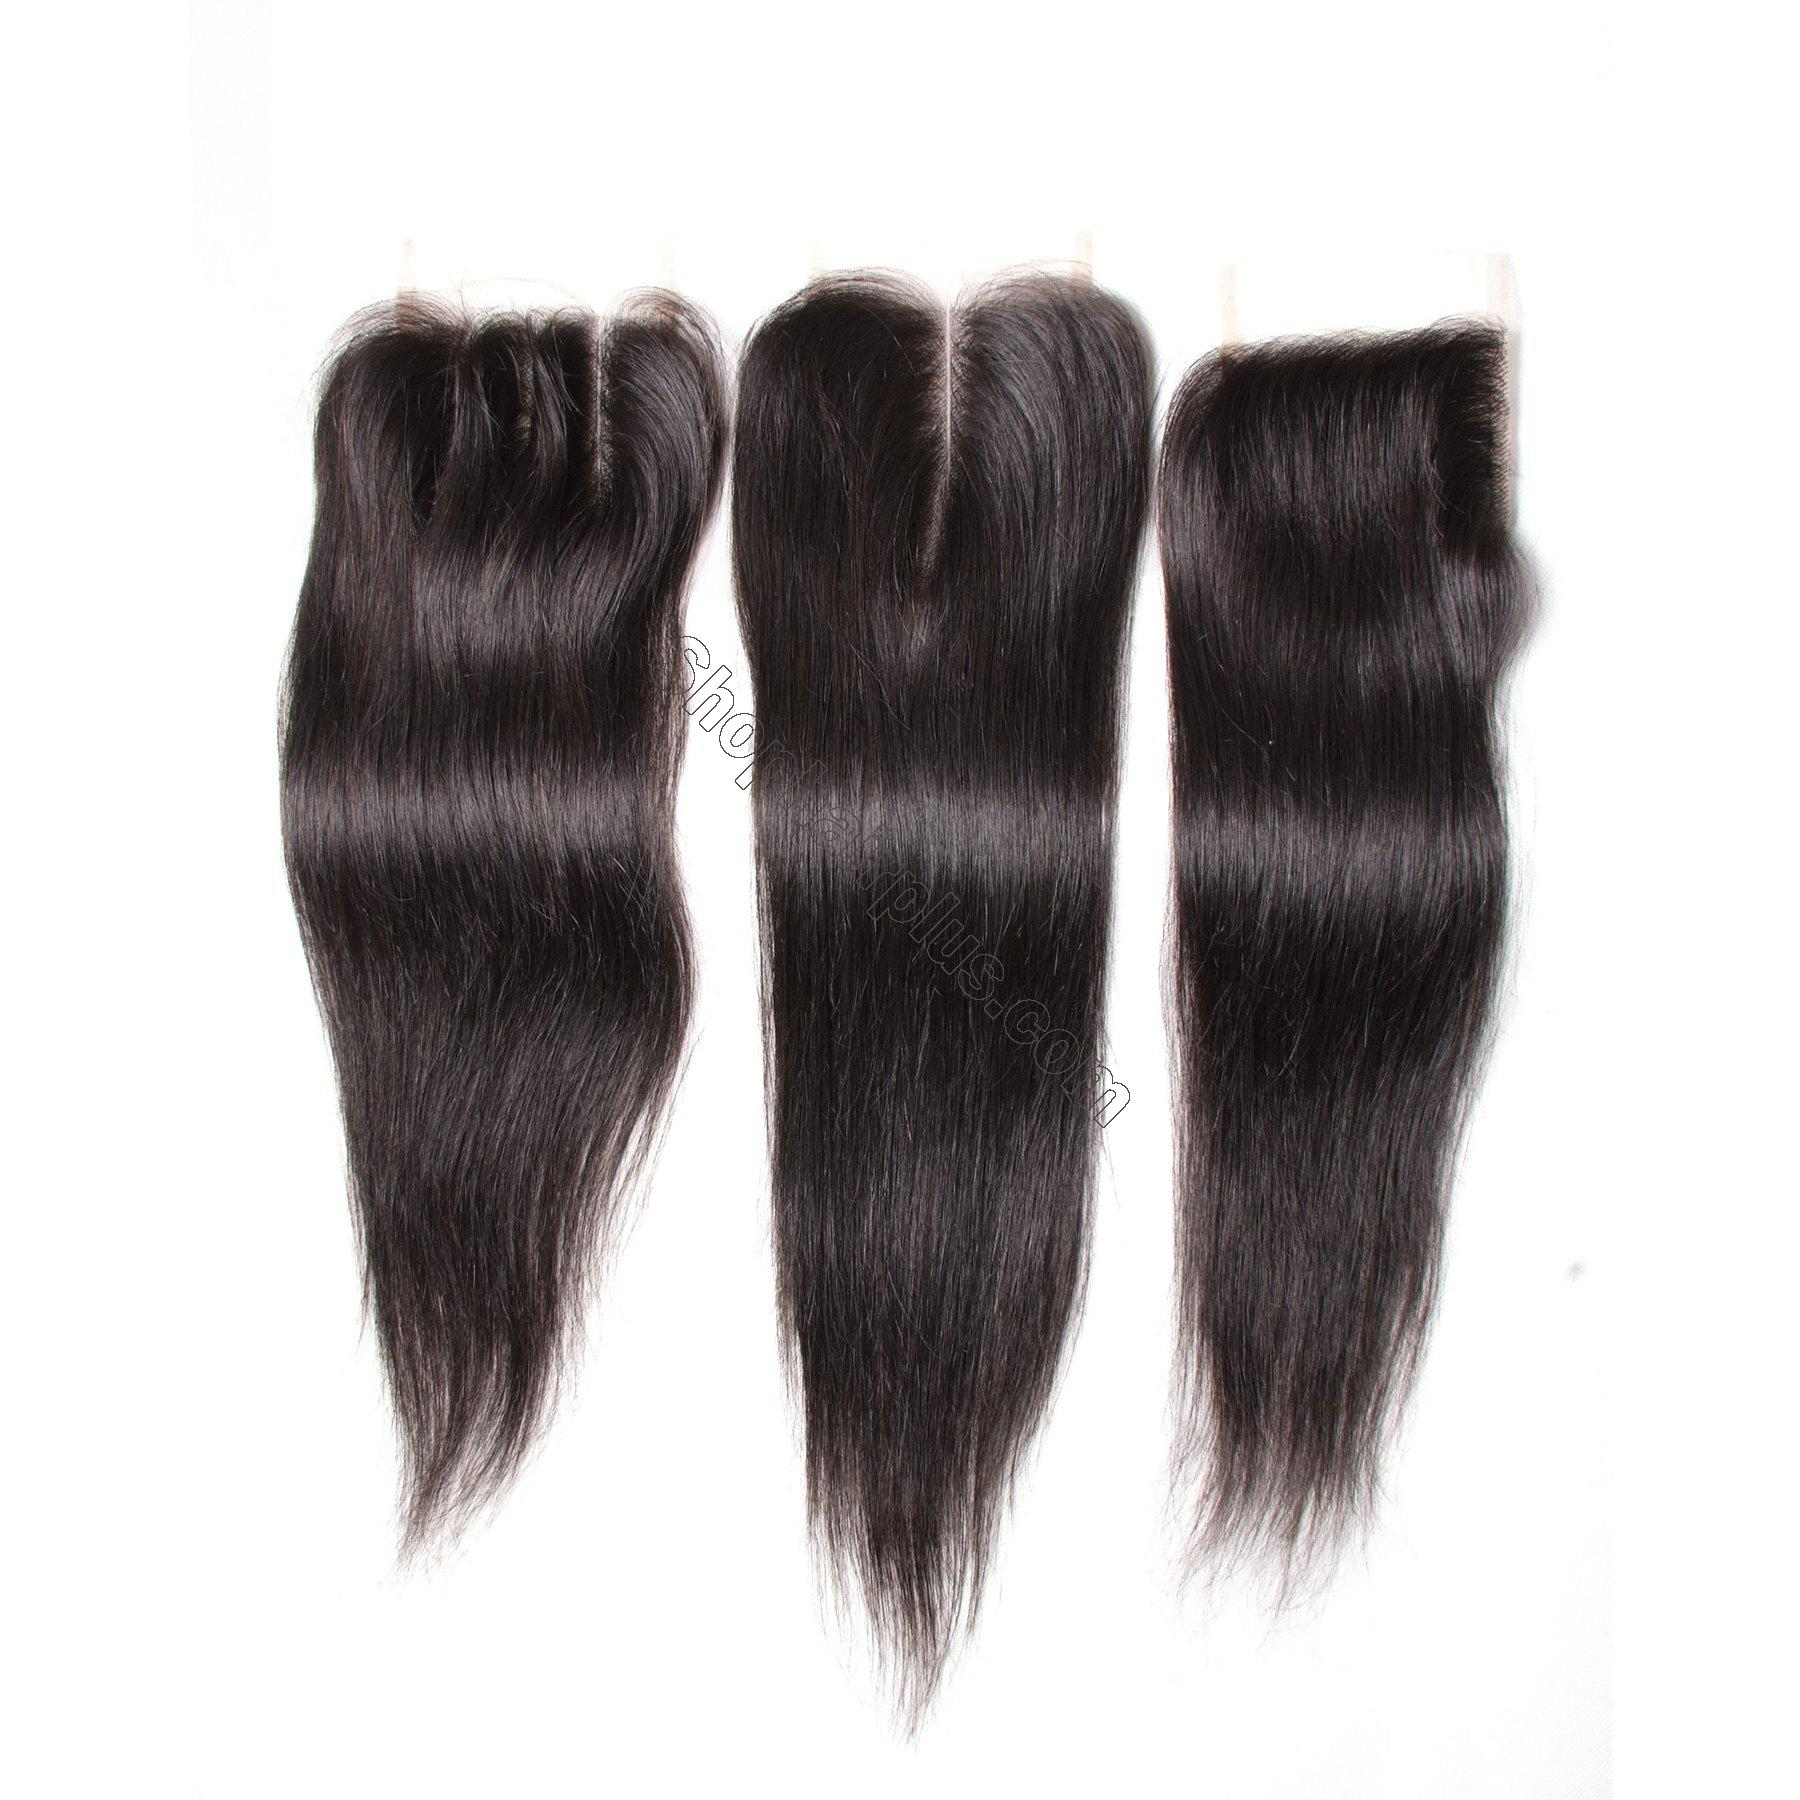 Hot sale Straight Hair 4x4 Lace Closure 7